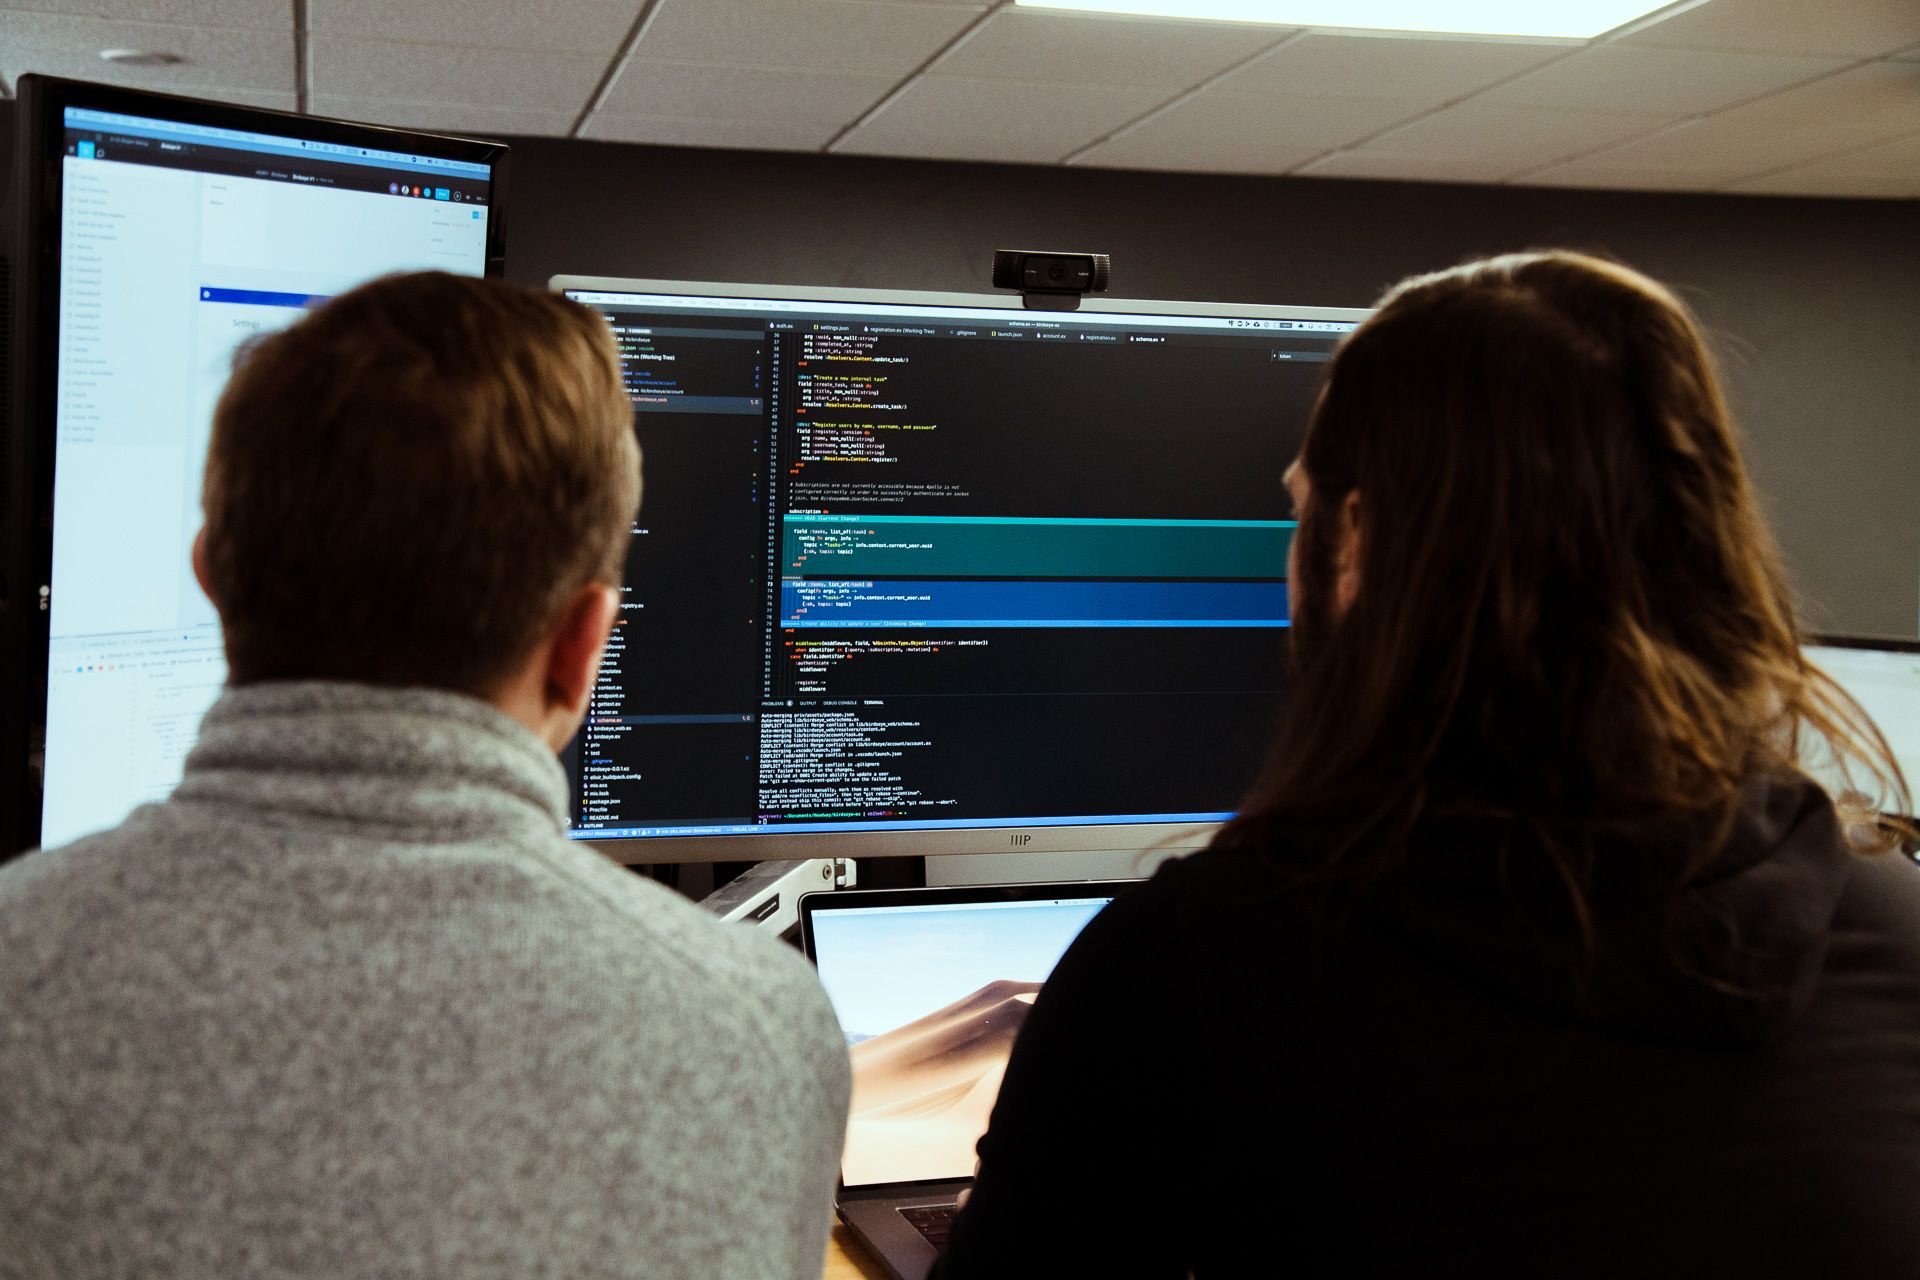 two software developers viewing code on computer screen